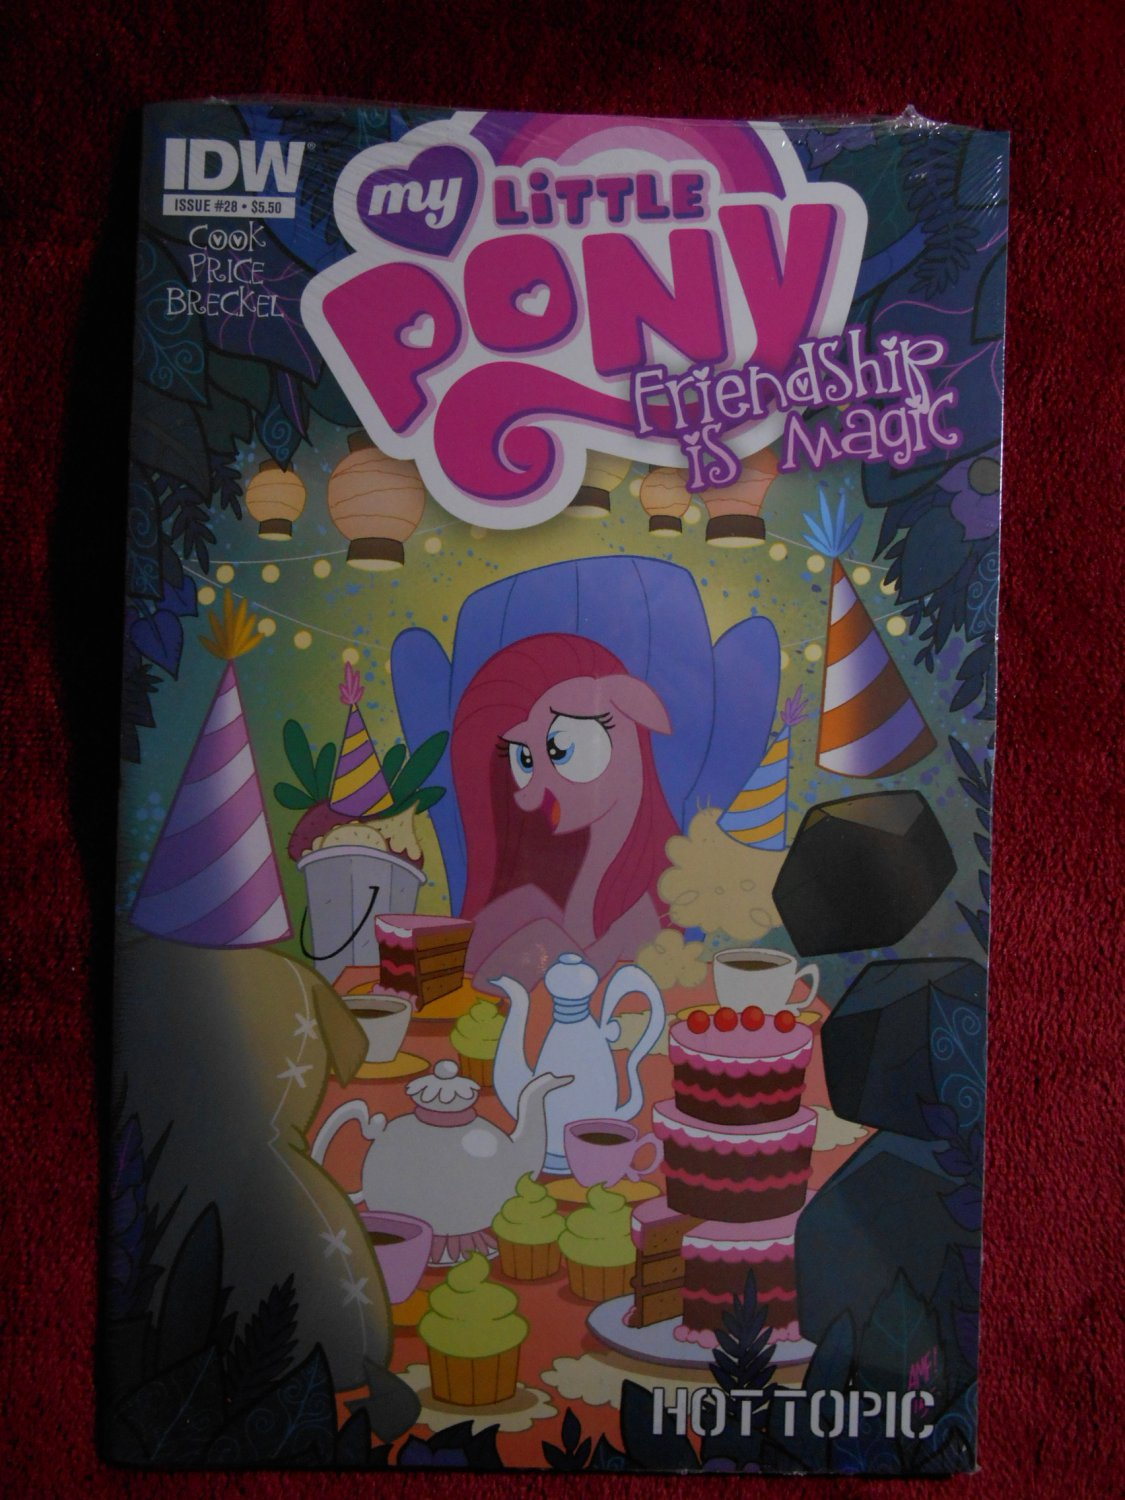 My Little Pony Friendship is Magic Comic - # 28 - Hot Topic Variant - Rare - IDW Comics - New -